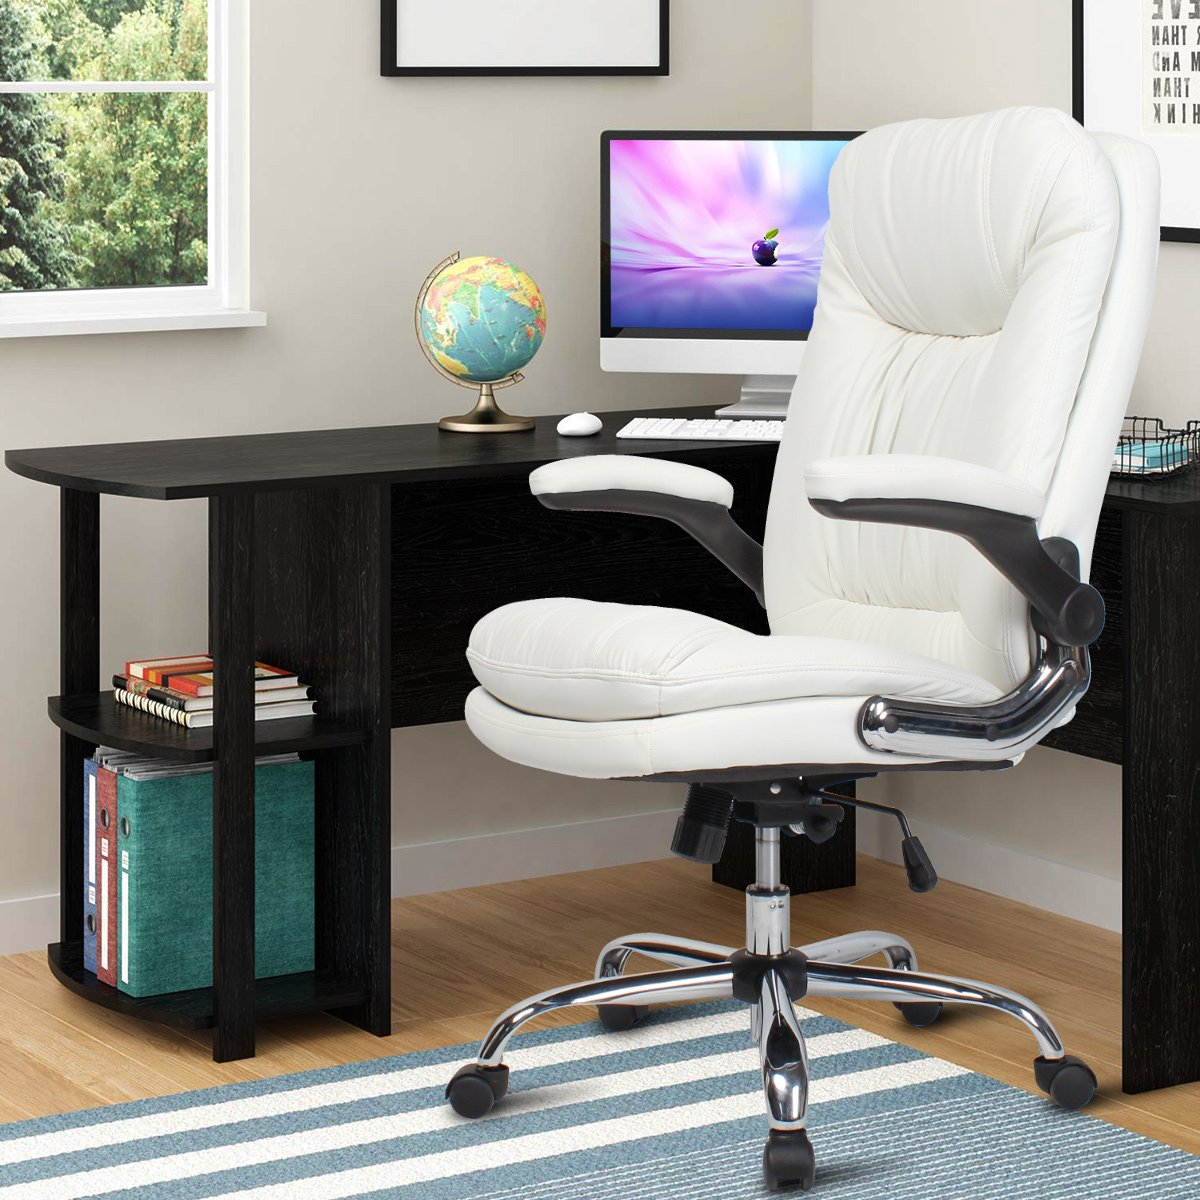 YAMASORO Ergonomic Office Chair with Flip-Up Arms and Comfy Headrest PU Leather High-Back Computer Desk Chair Big and Tall Capacity 330lbs White by YAMASORO (Image #2)